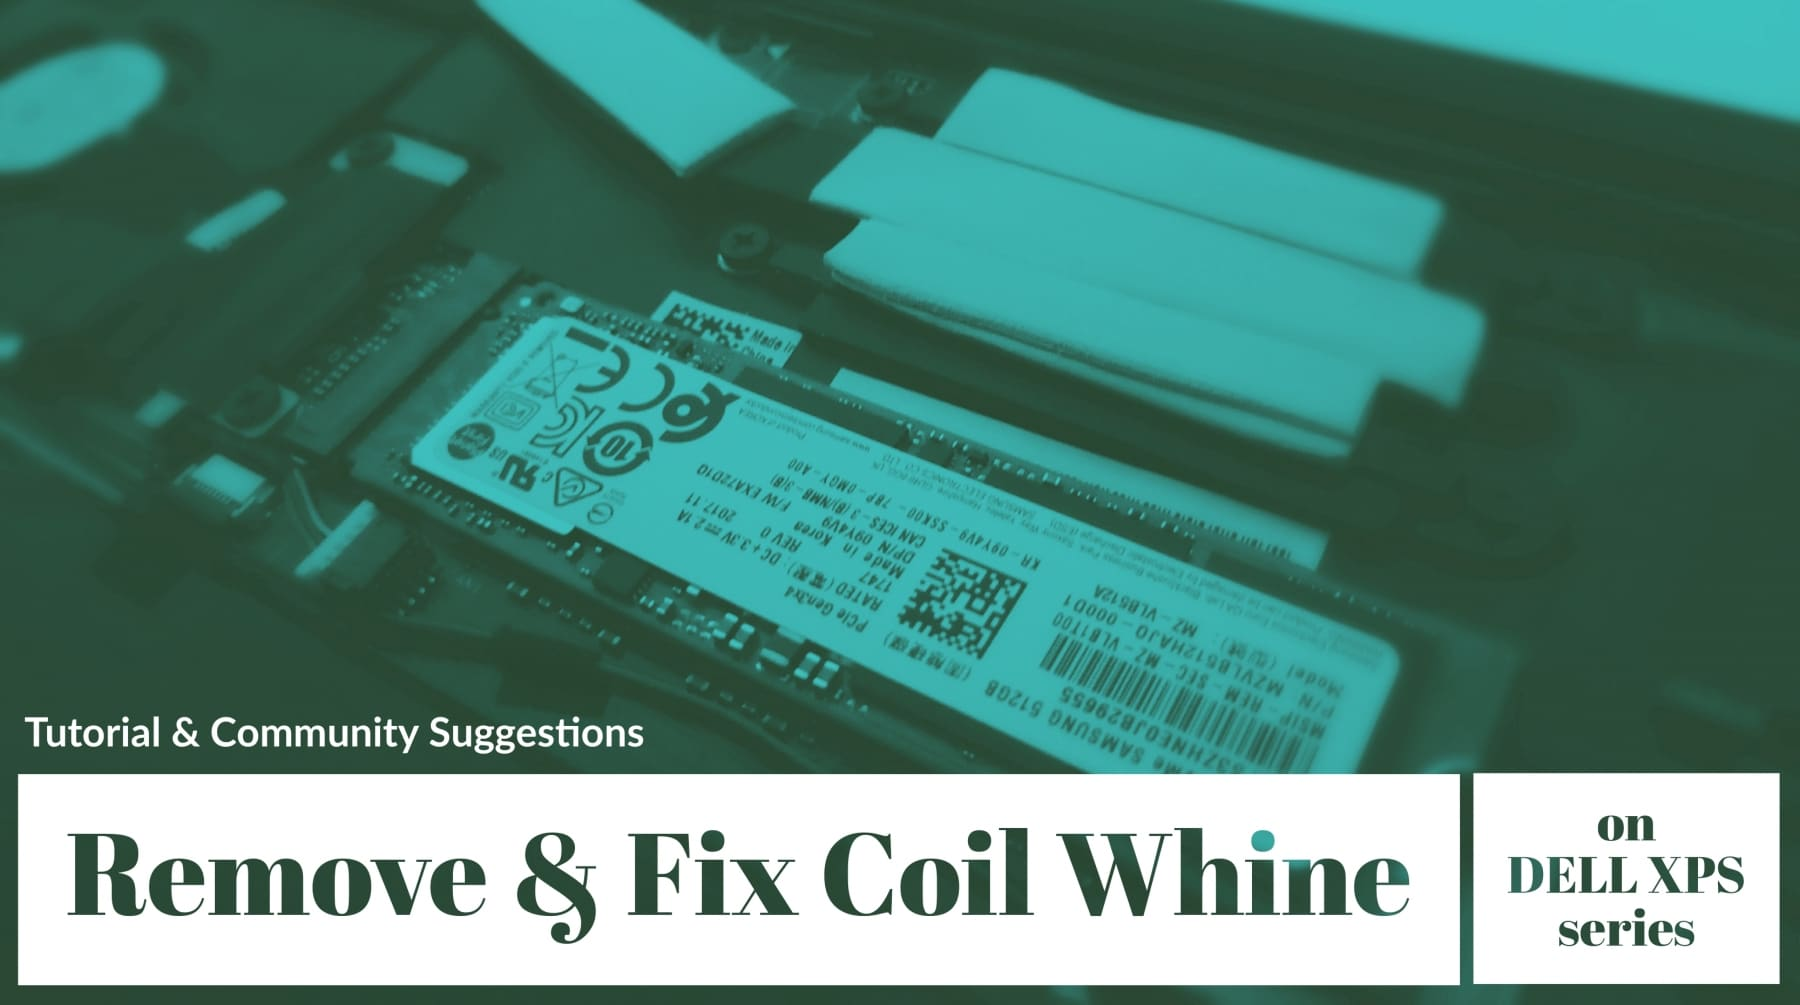 Reducing and Fixing Coil Whine on Dell XPS 13 and XPS 15 Series